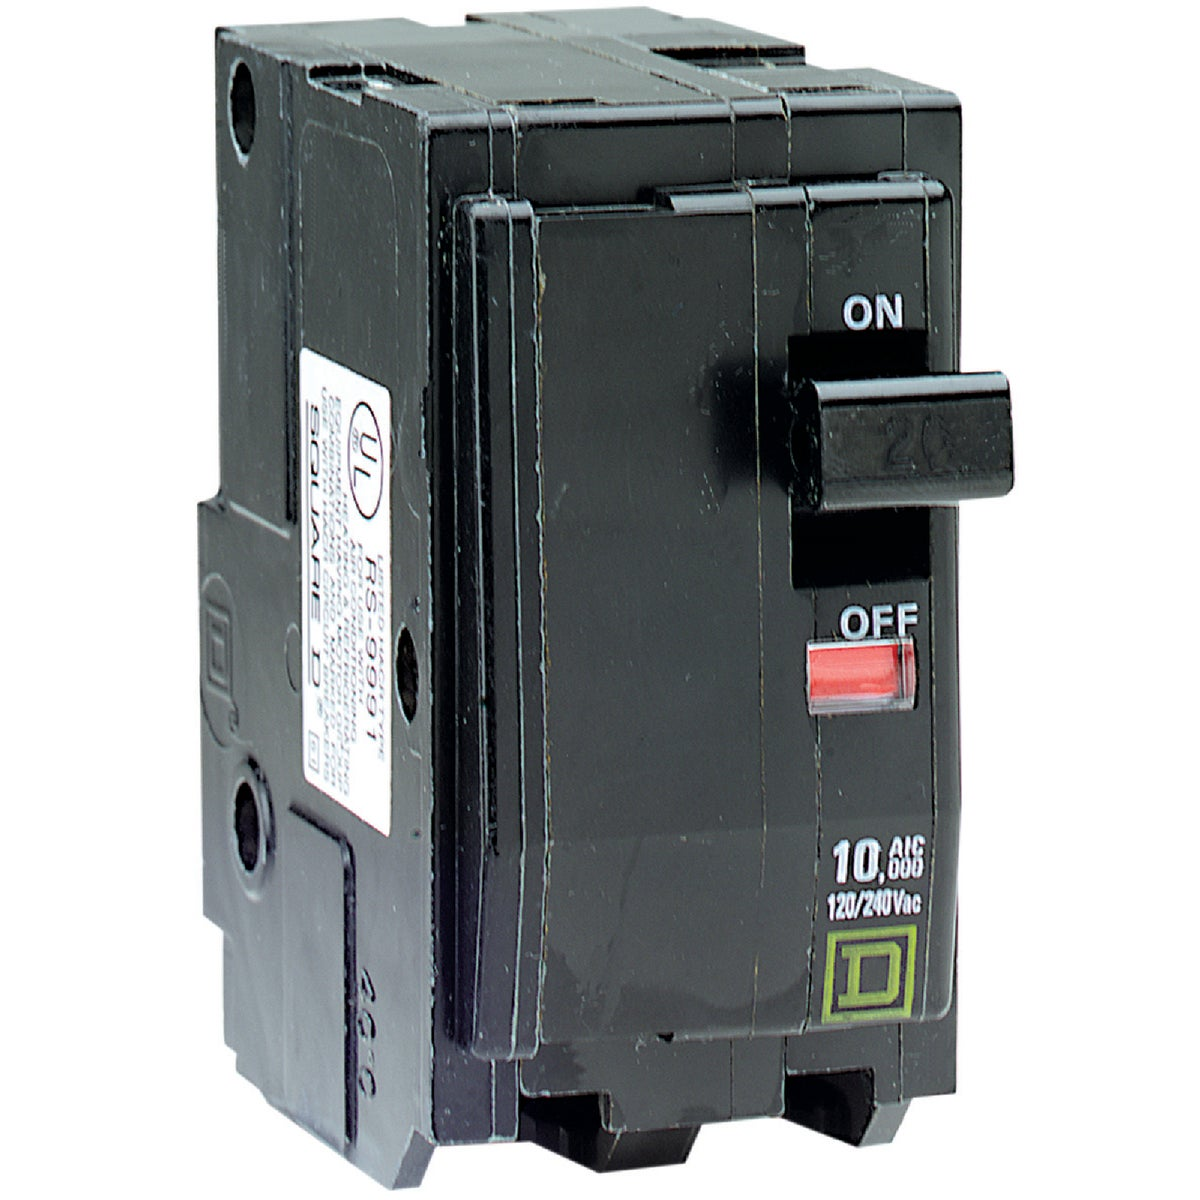 70A 2P CIRCUIT BREAKER - QO270CP by Square D Co